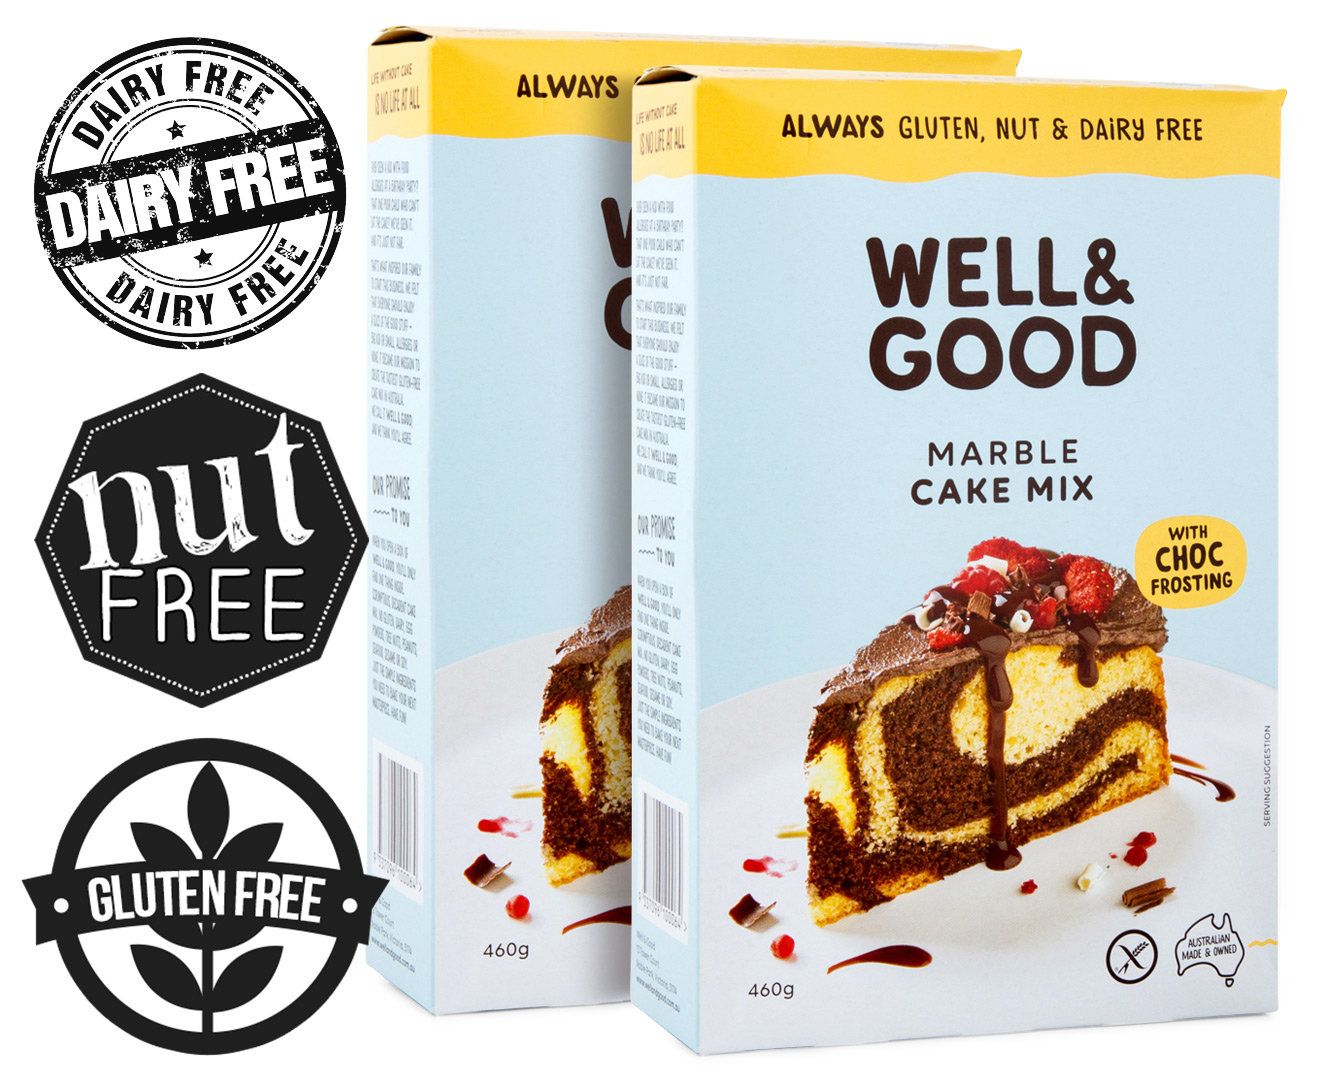 Gluten Dairy And Nut Free Cake Mix